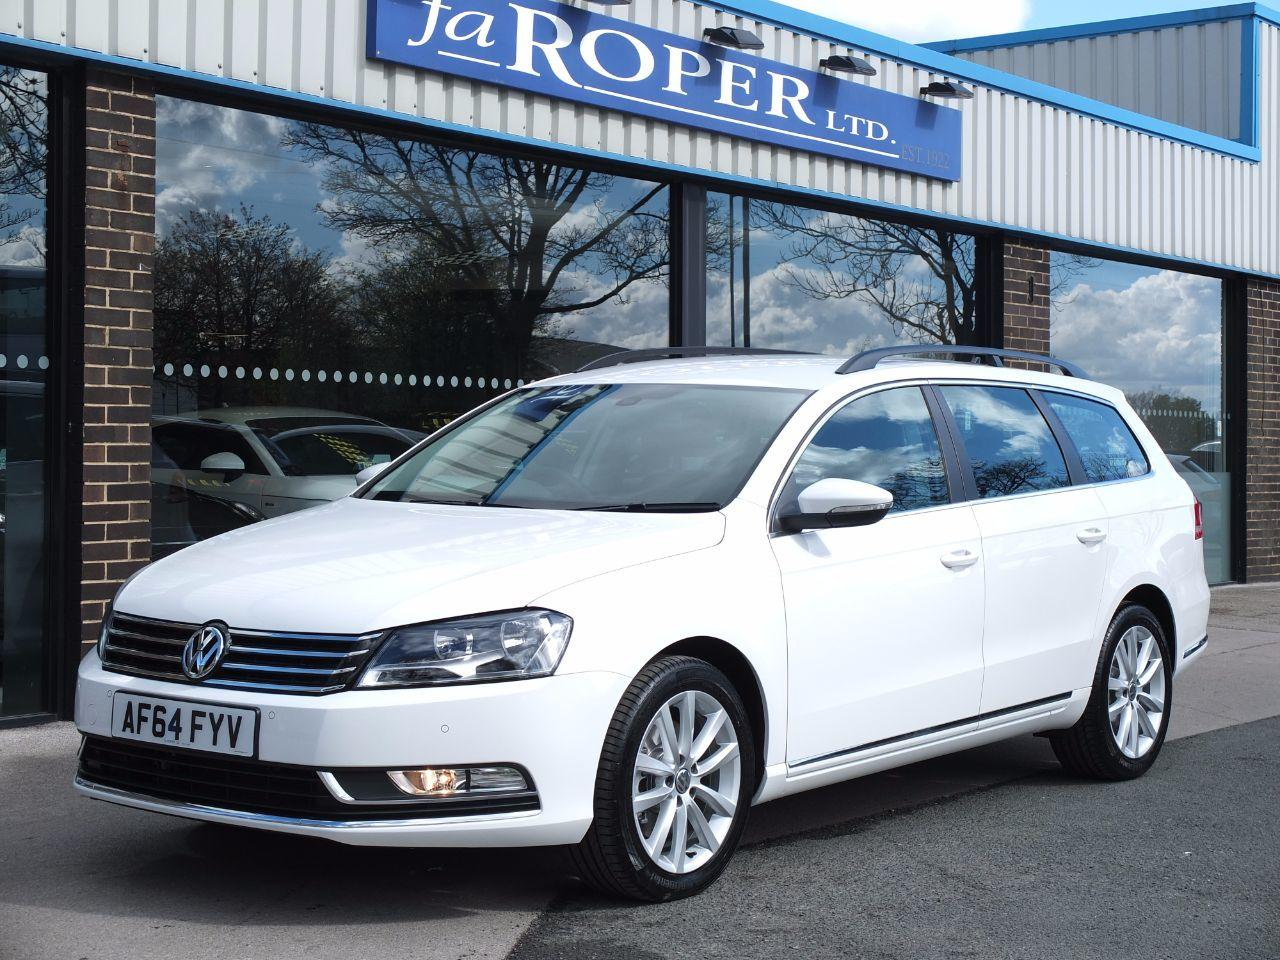 Volkswagen Passat 2.0 TDI Bluemotion Tech Executive Estate 140 ps Estate Diesel Pure White